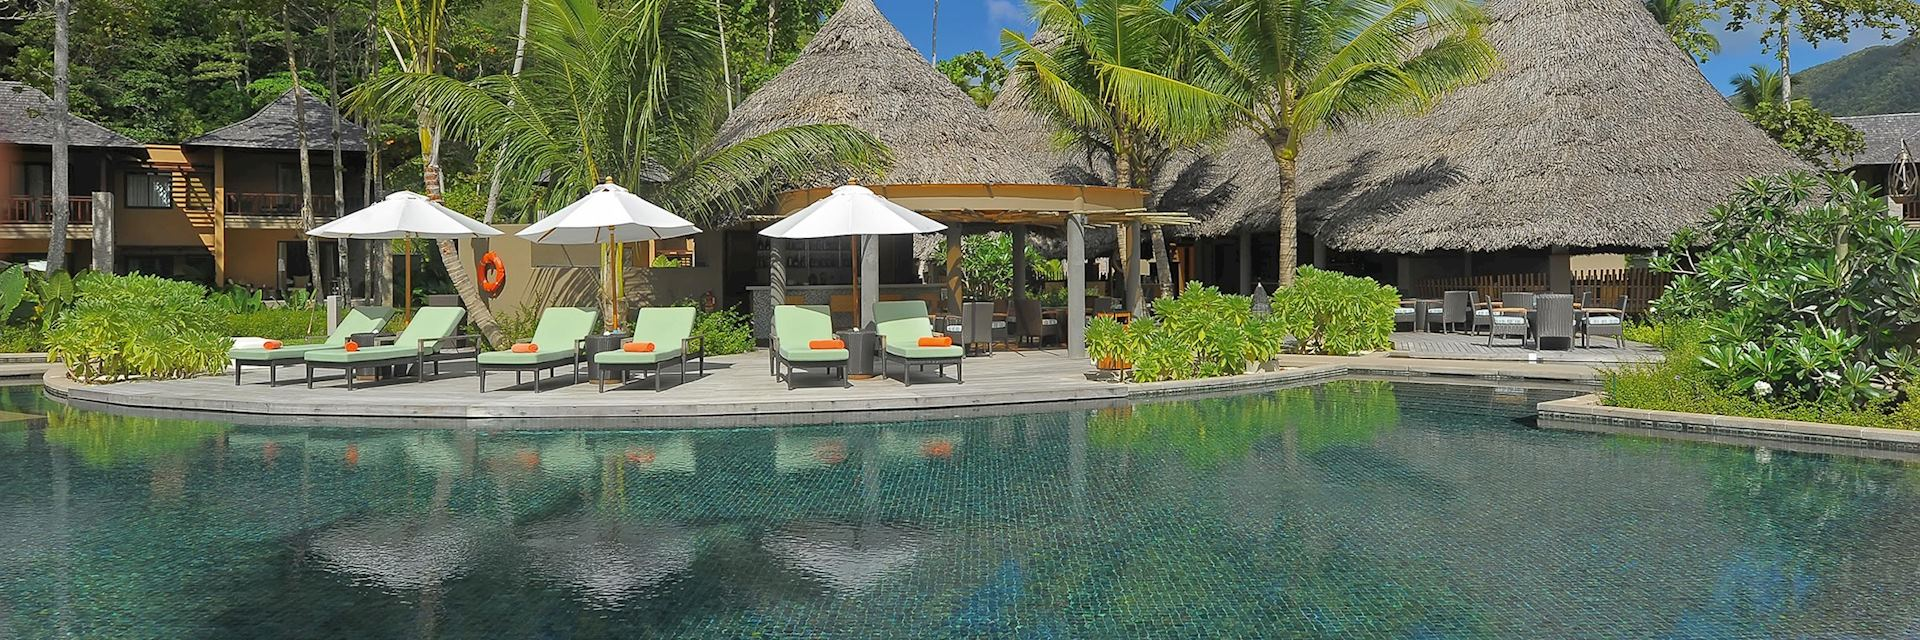 Constance Ephelia Resort, the Seychelles